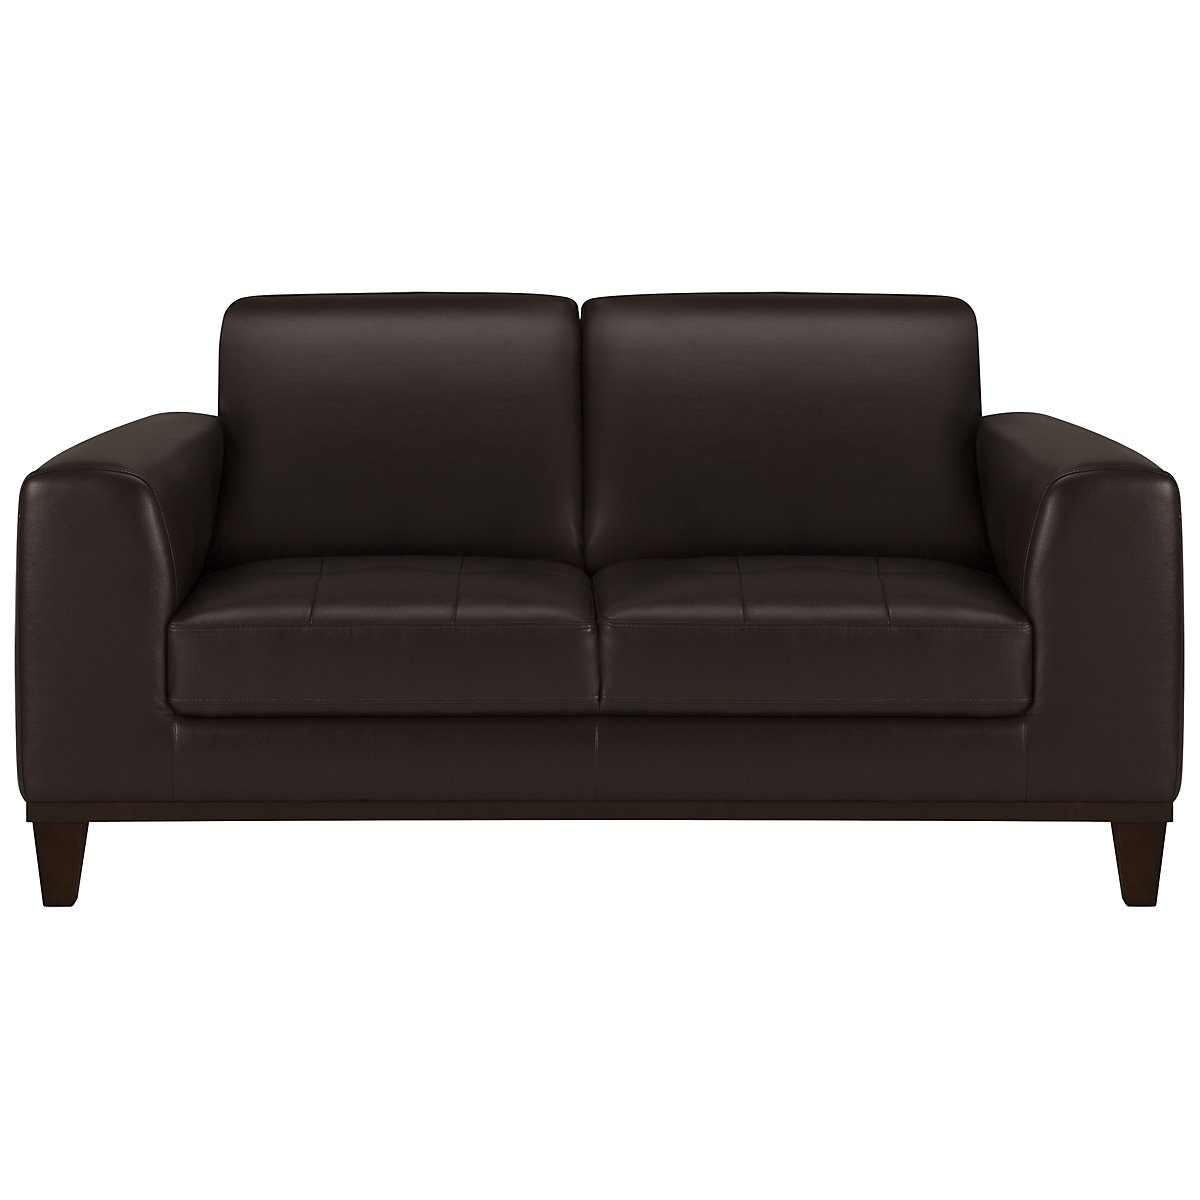 Piper Dark Brown Bonded Leather Loveseat